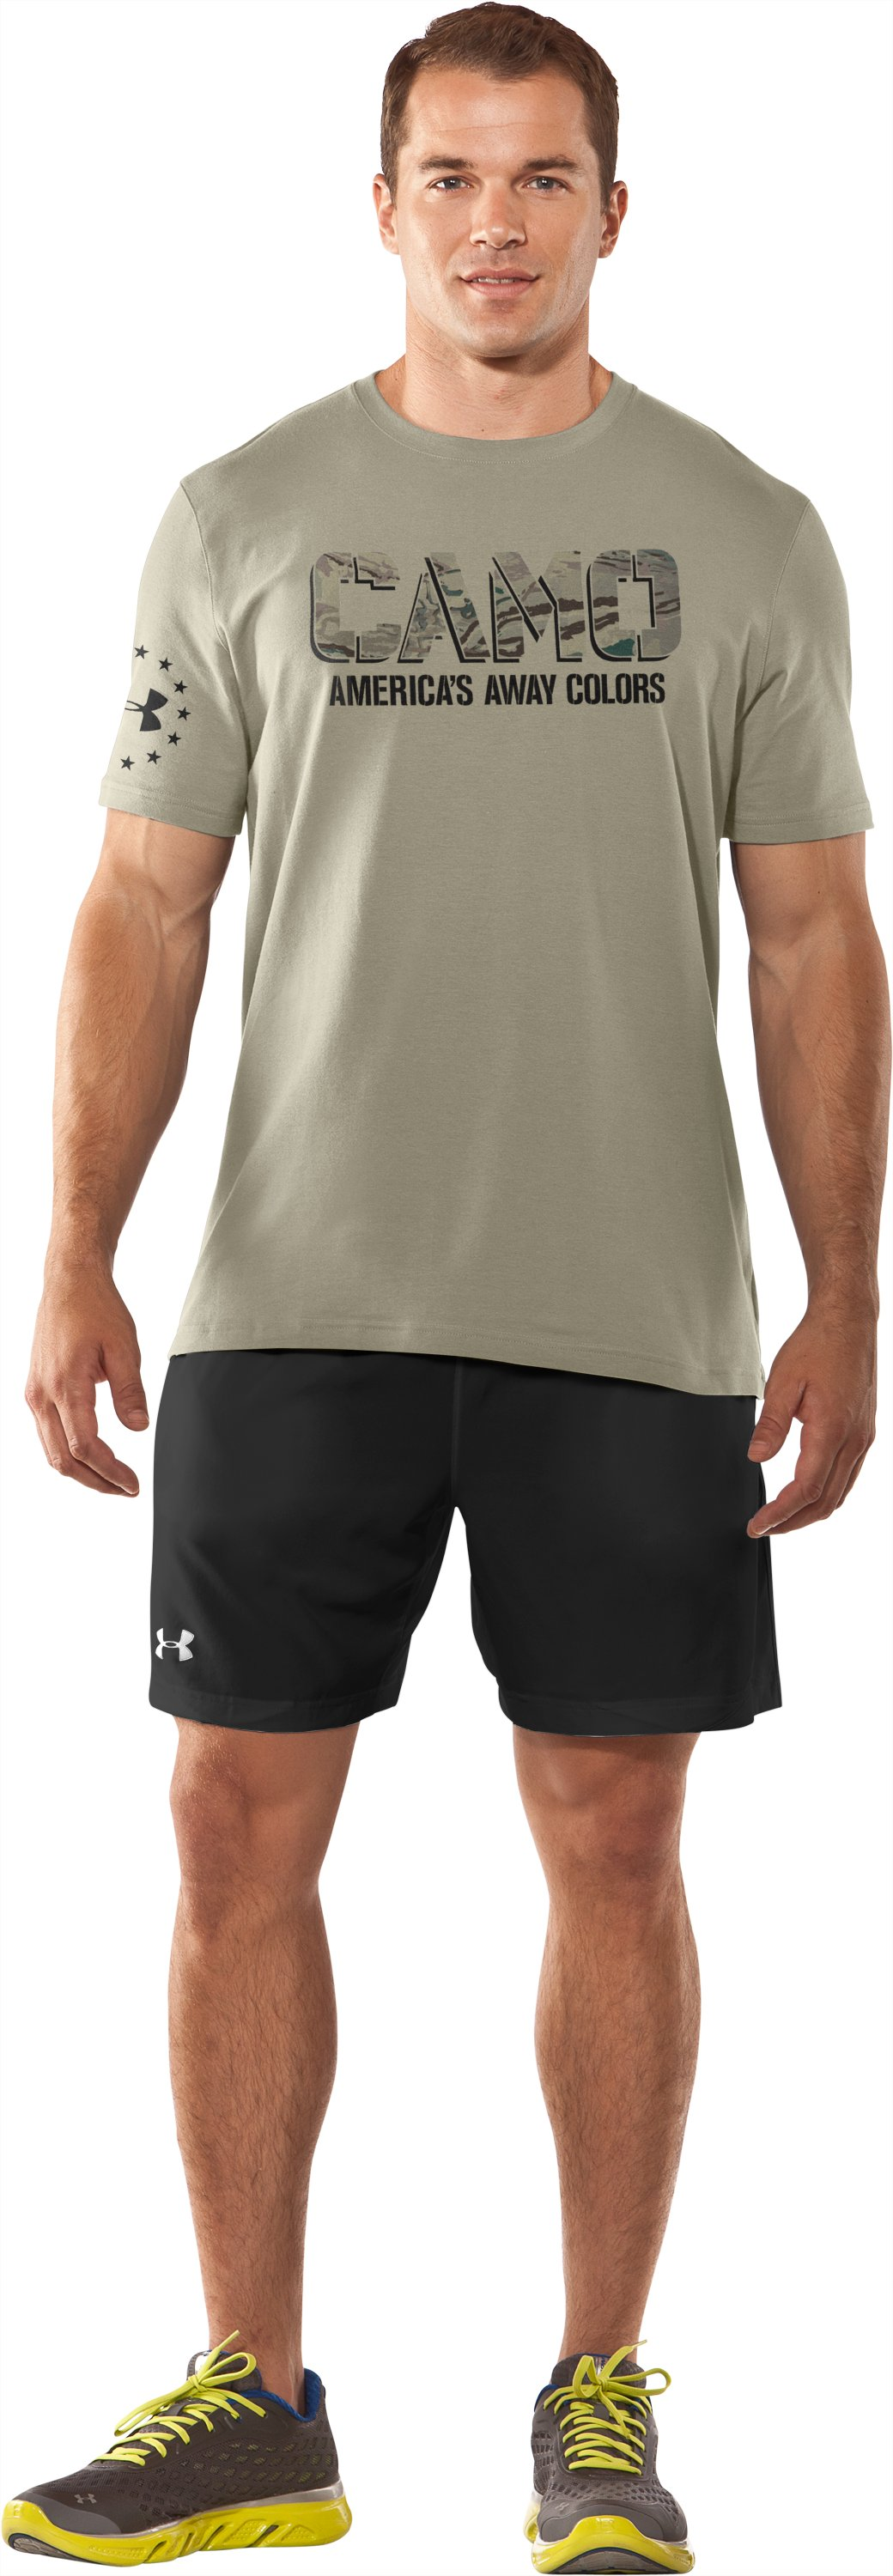 Men's USA Away Colors T-Shirt, Desert Sand, zoomed image